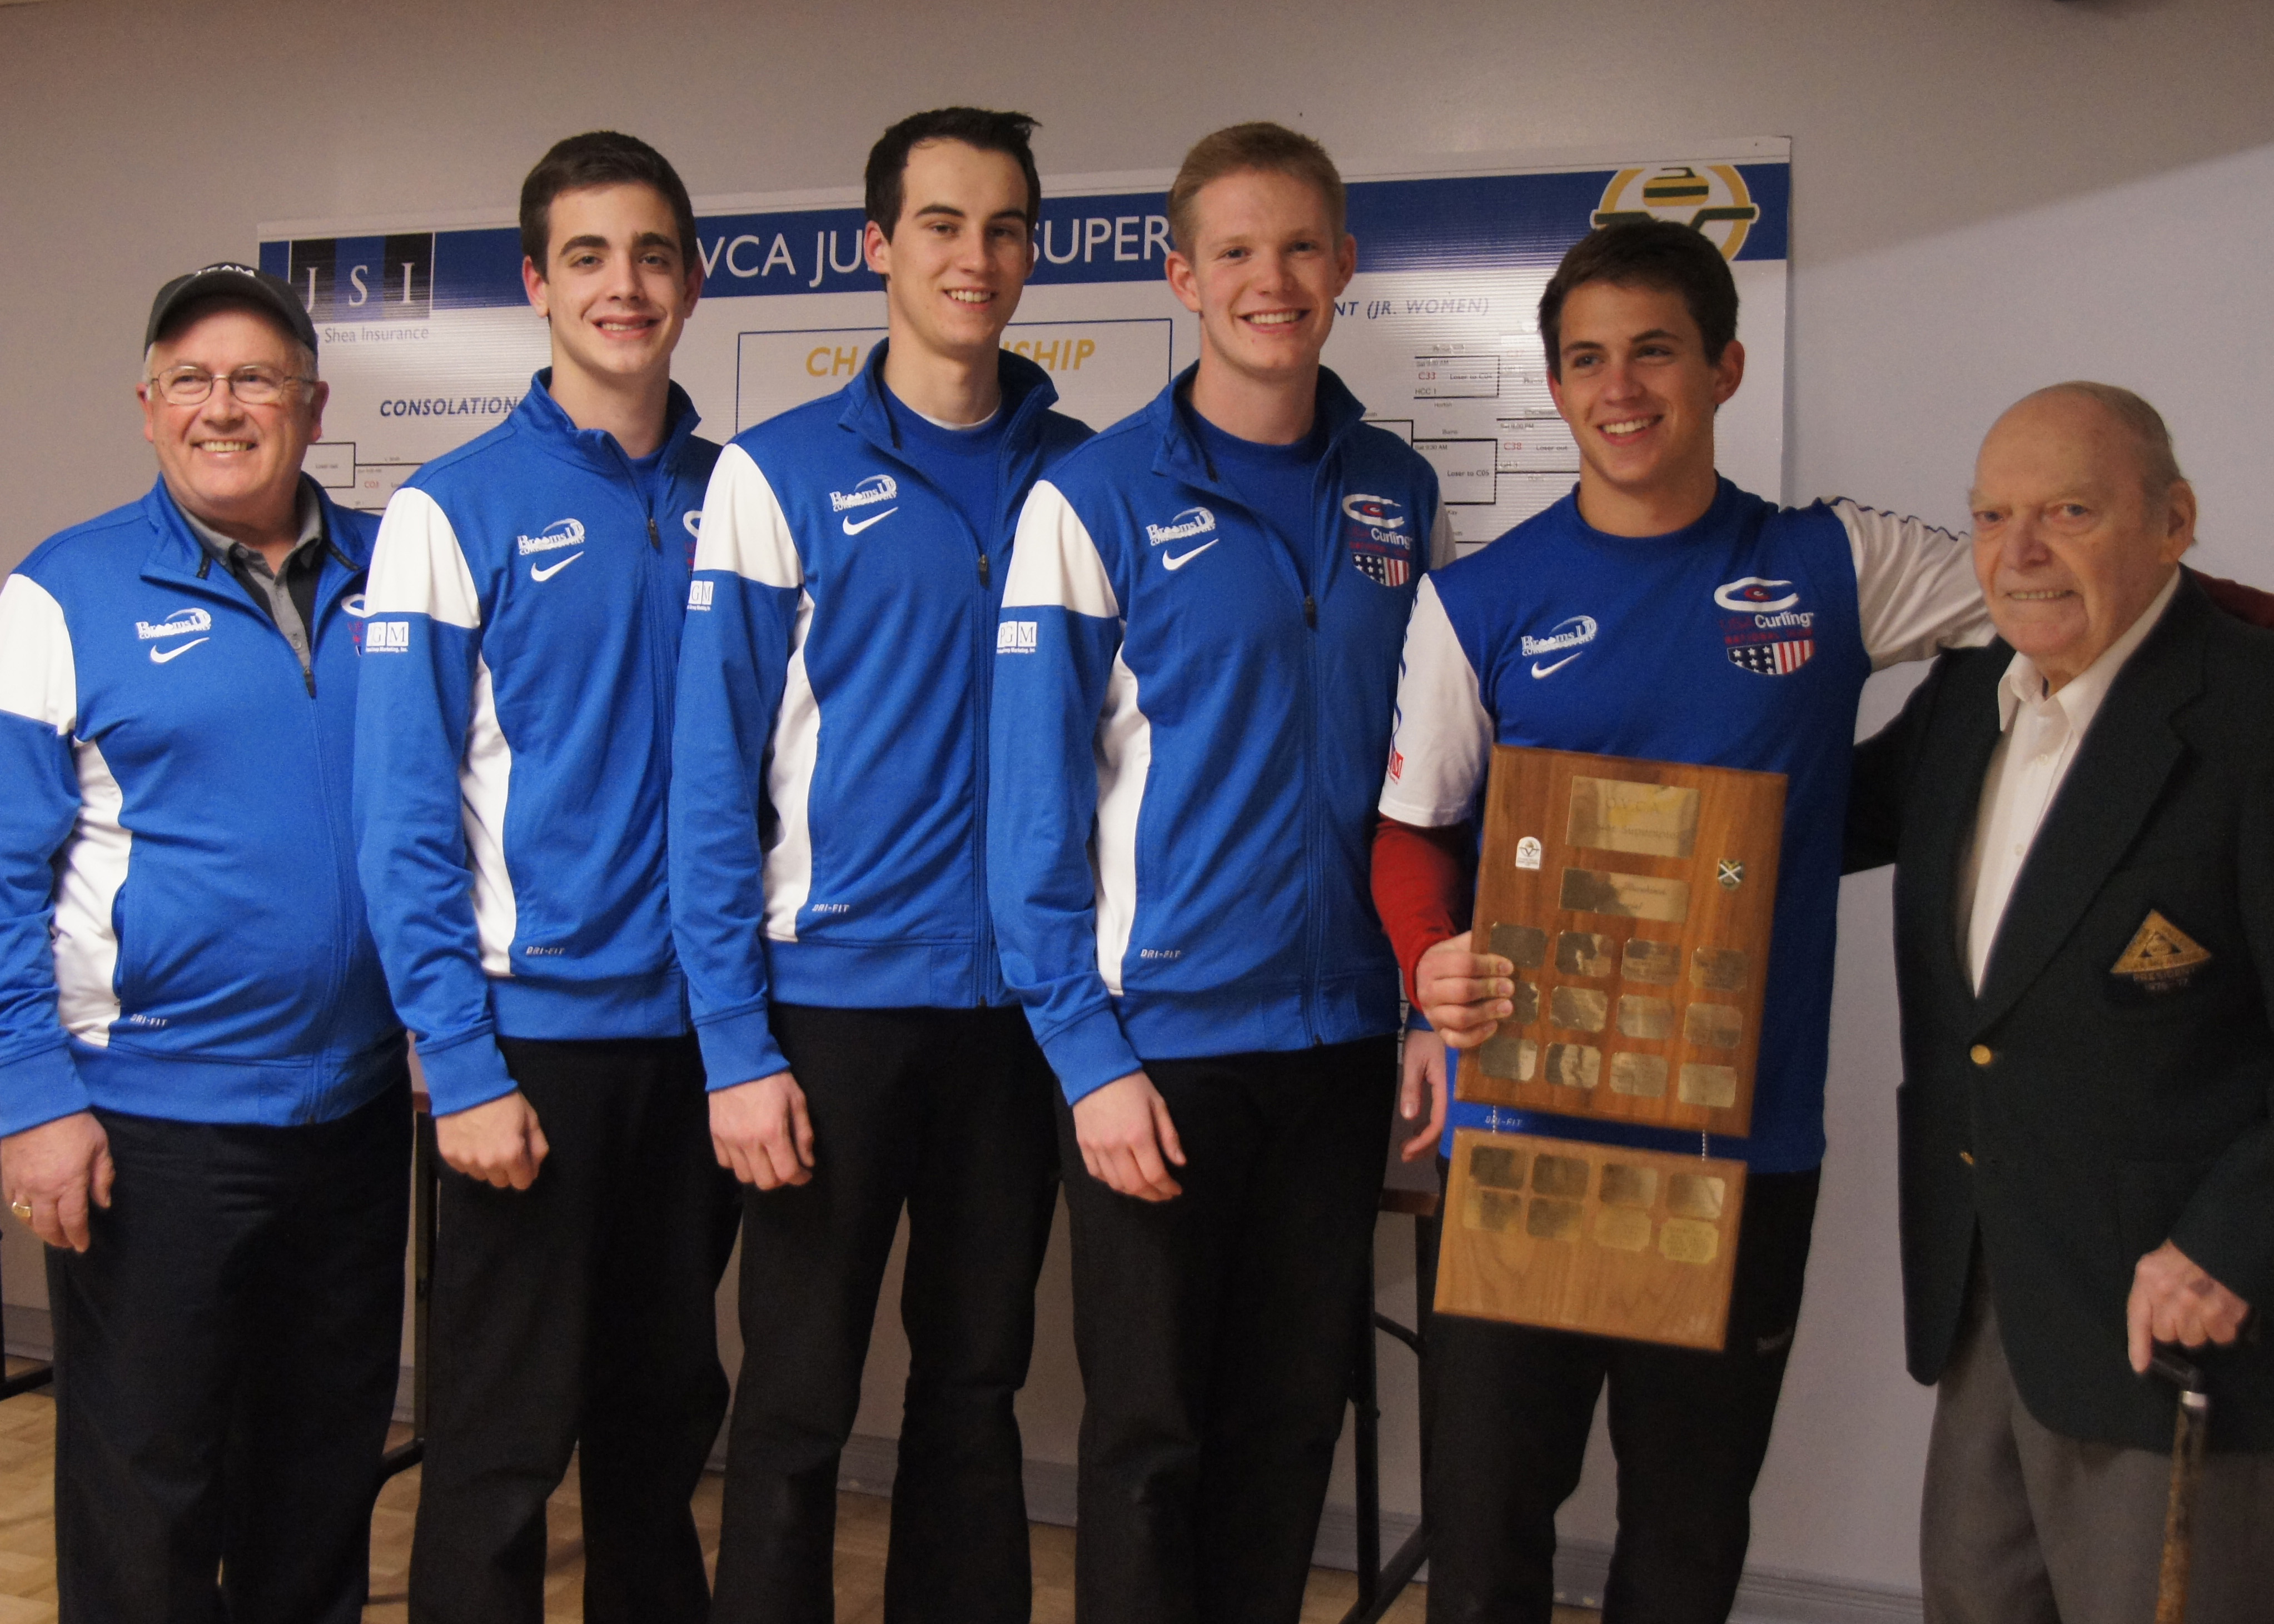 2013 Winners - Men